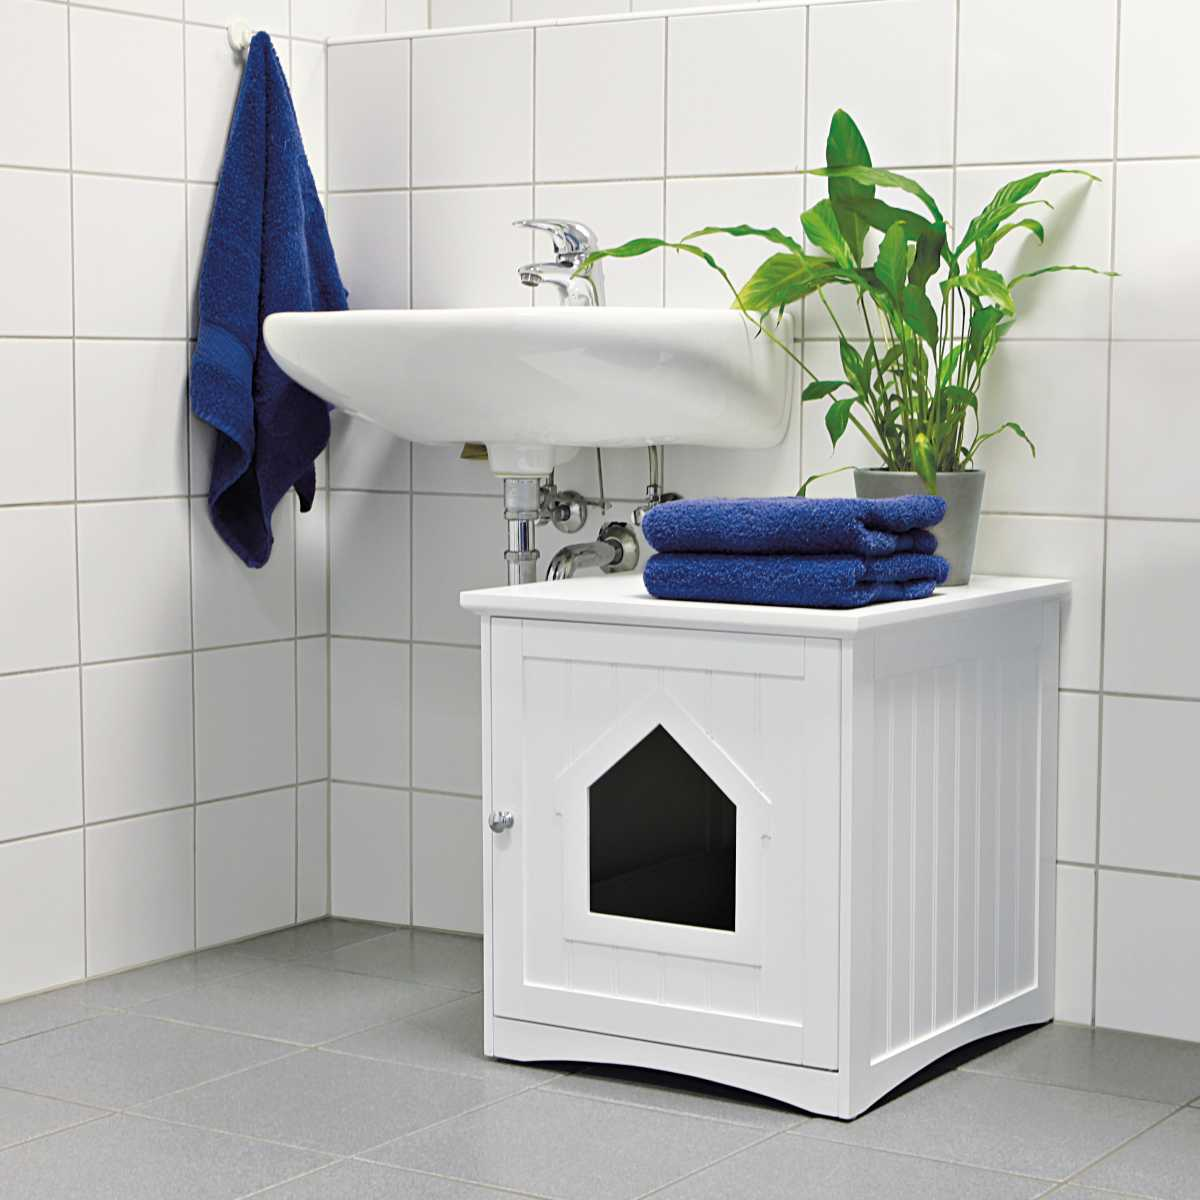 Wooden Cat Toilet Litterbox Cabinet White